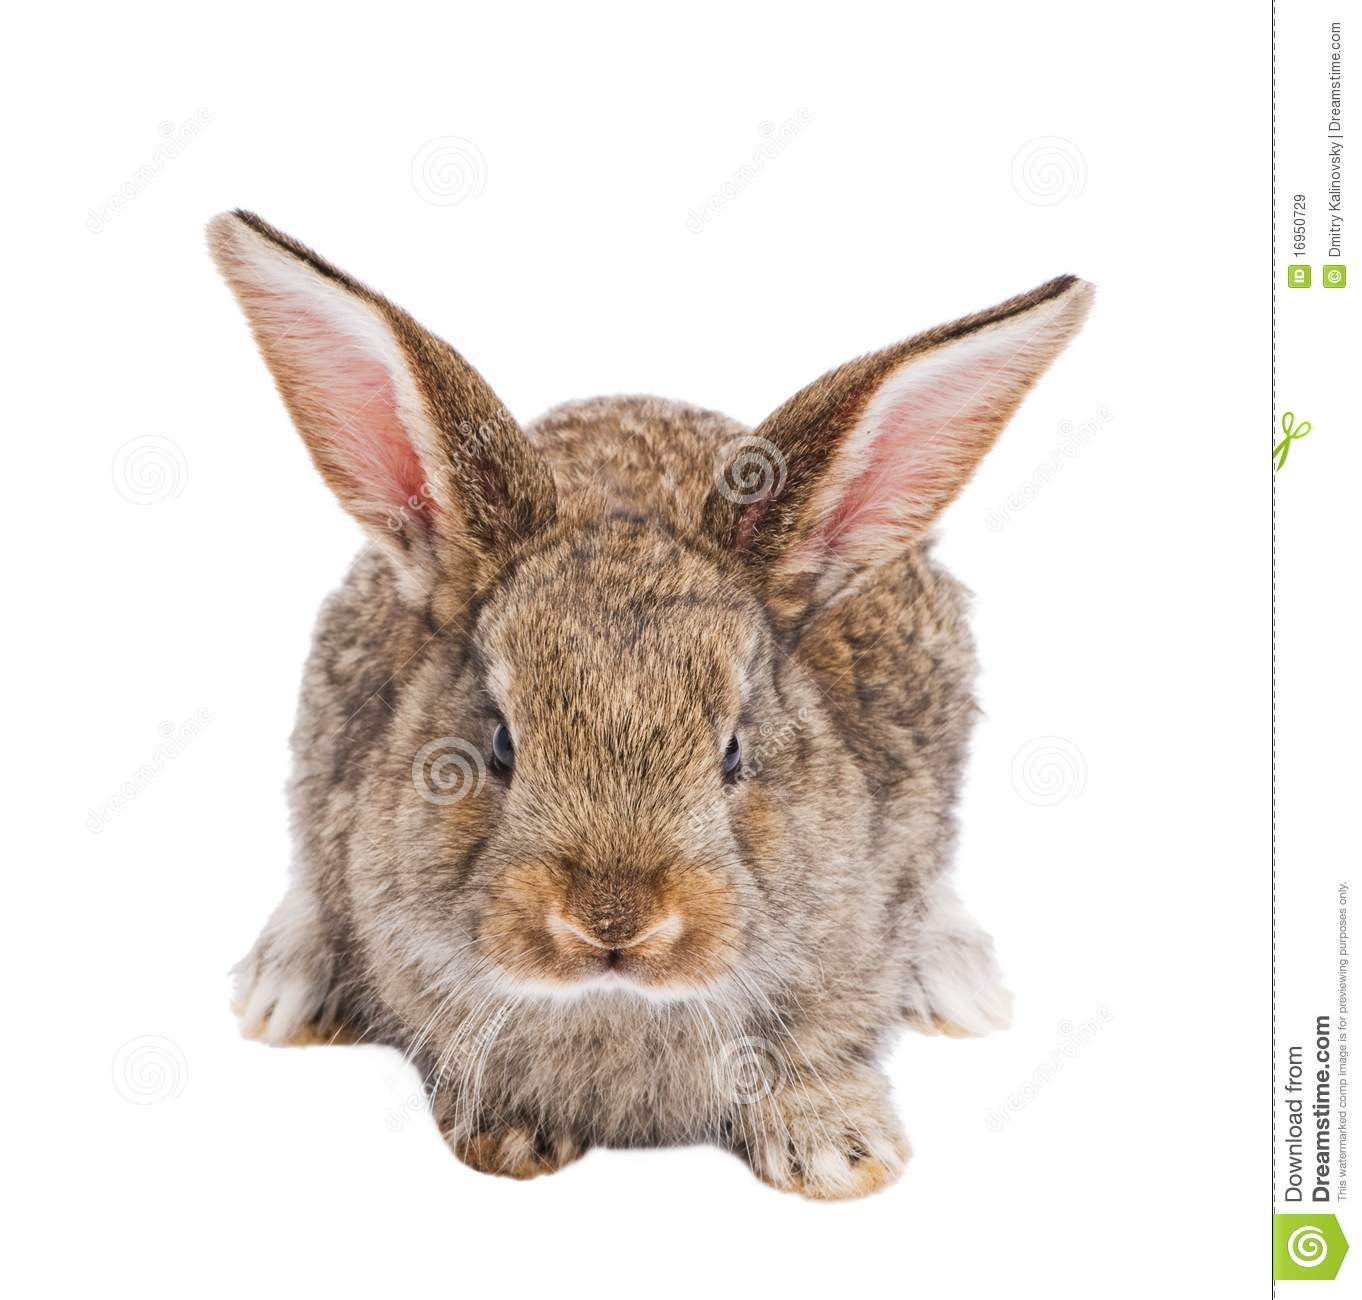 One Young Brown Rabbit Royalty Free Stock Images - Image ...